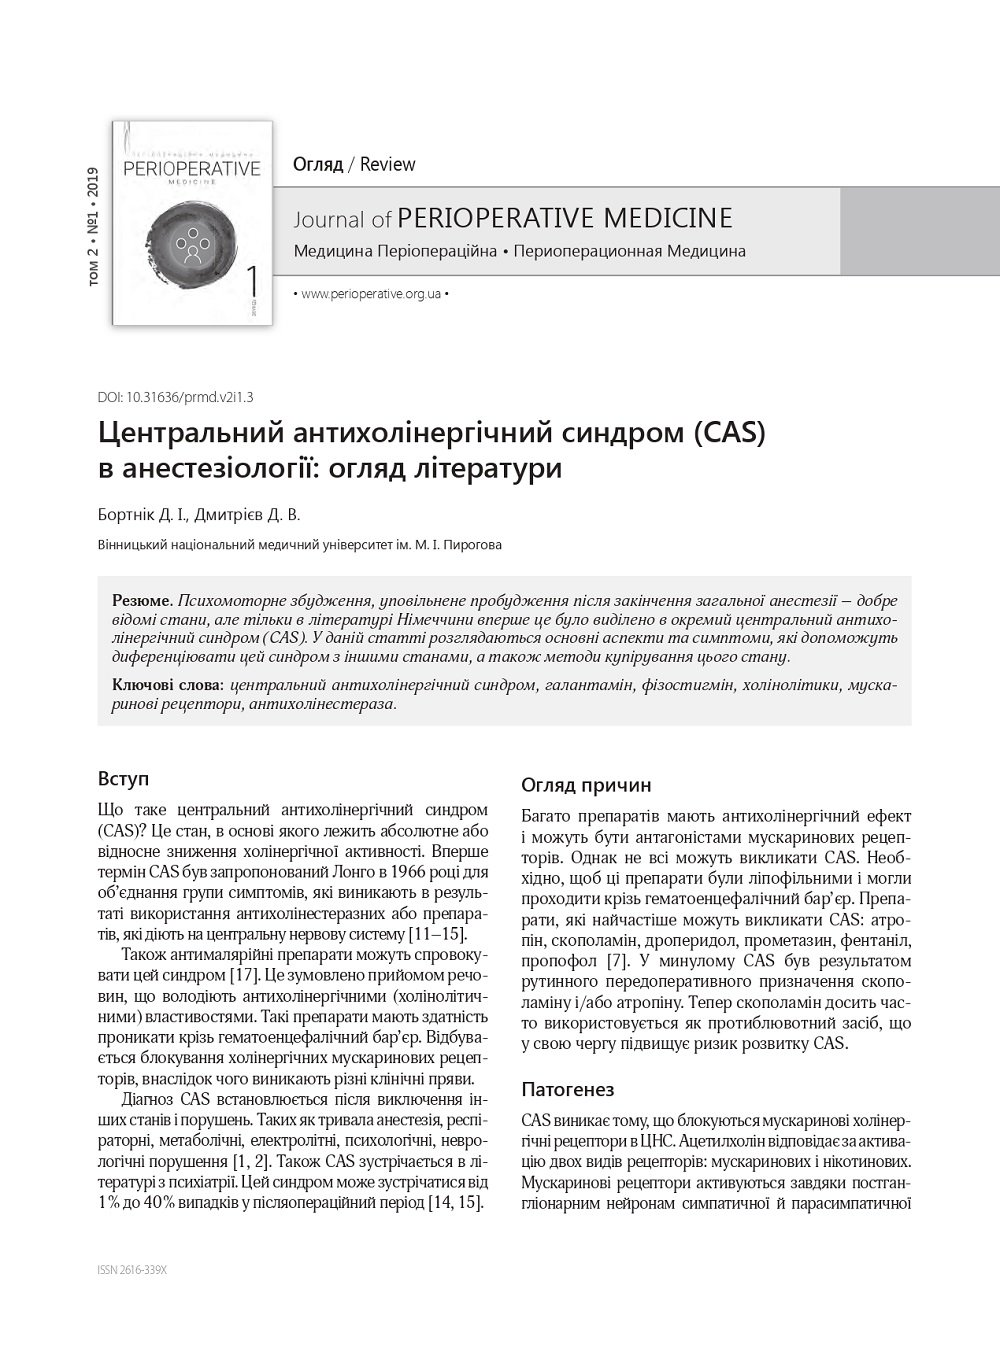 Centralanticholinergicsyndrome(CAS)inanesthesiology: anarrativereview